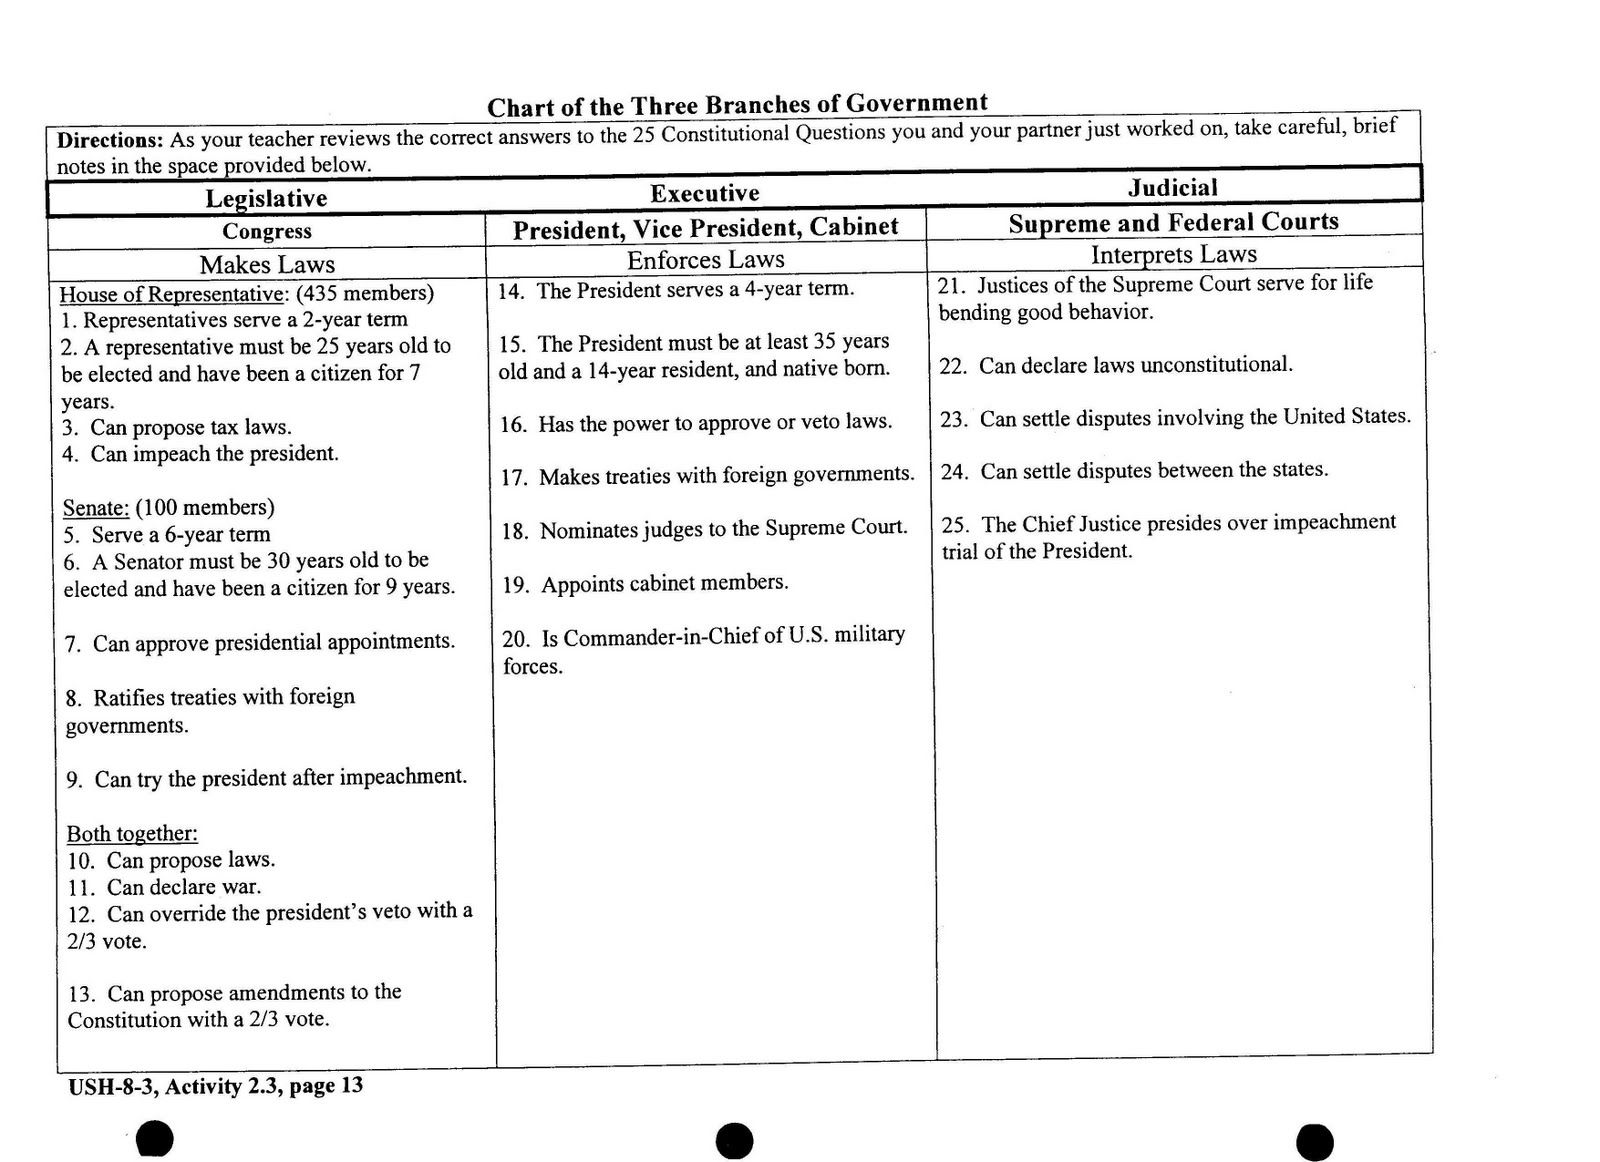 Worksheets Judicial Branch Worksheet gms 6th grade social studies three branches chart and worksheets worksheets